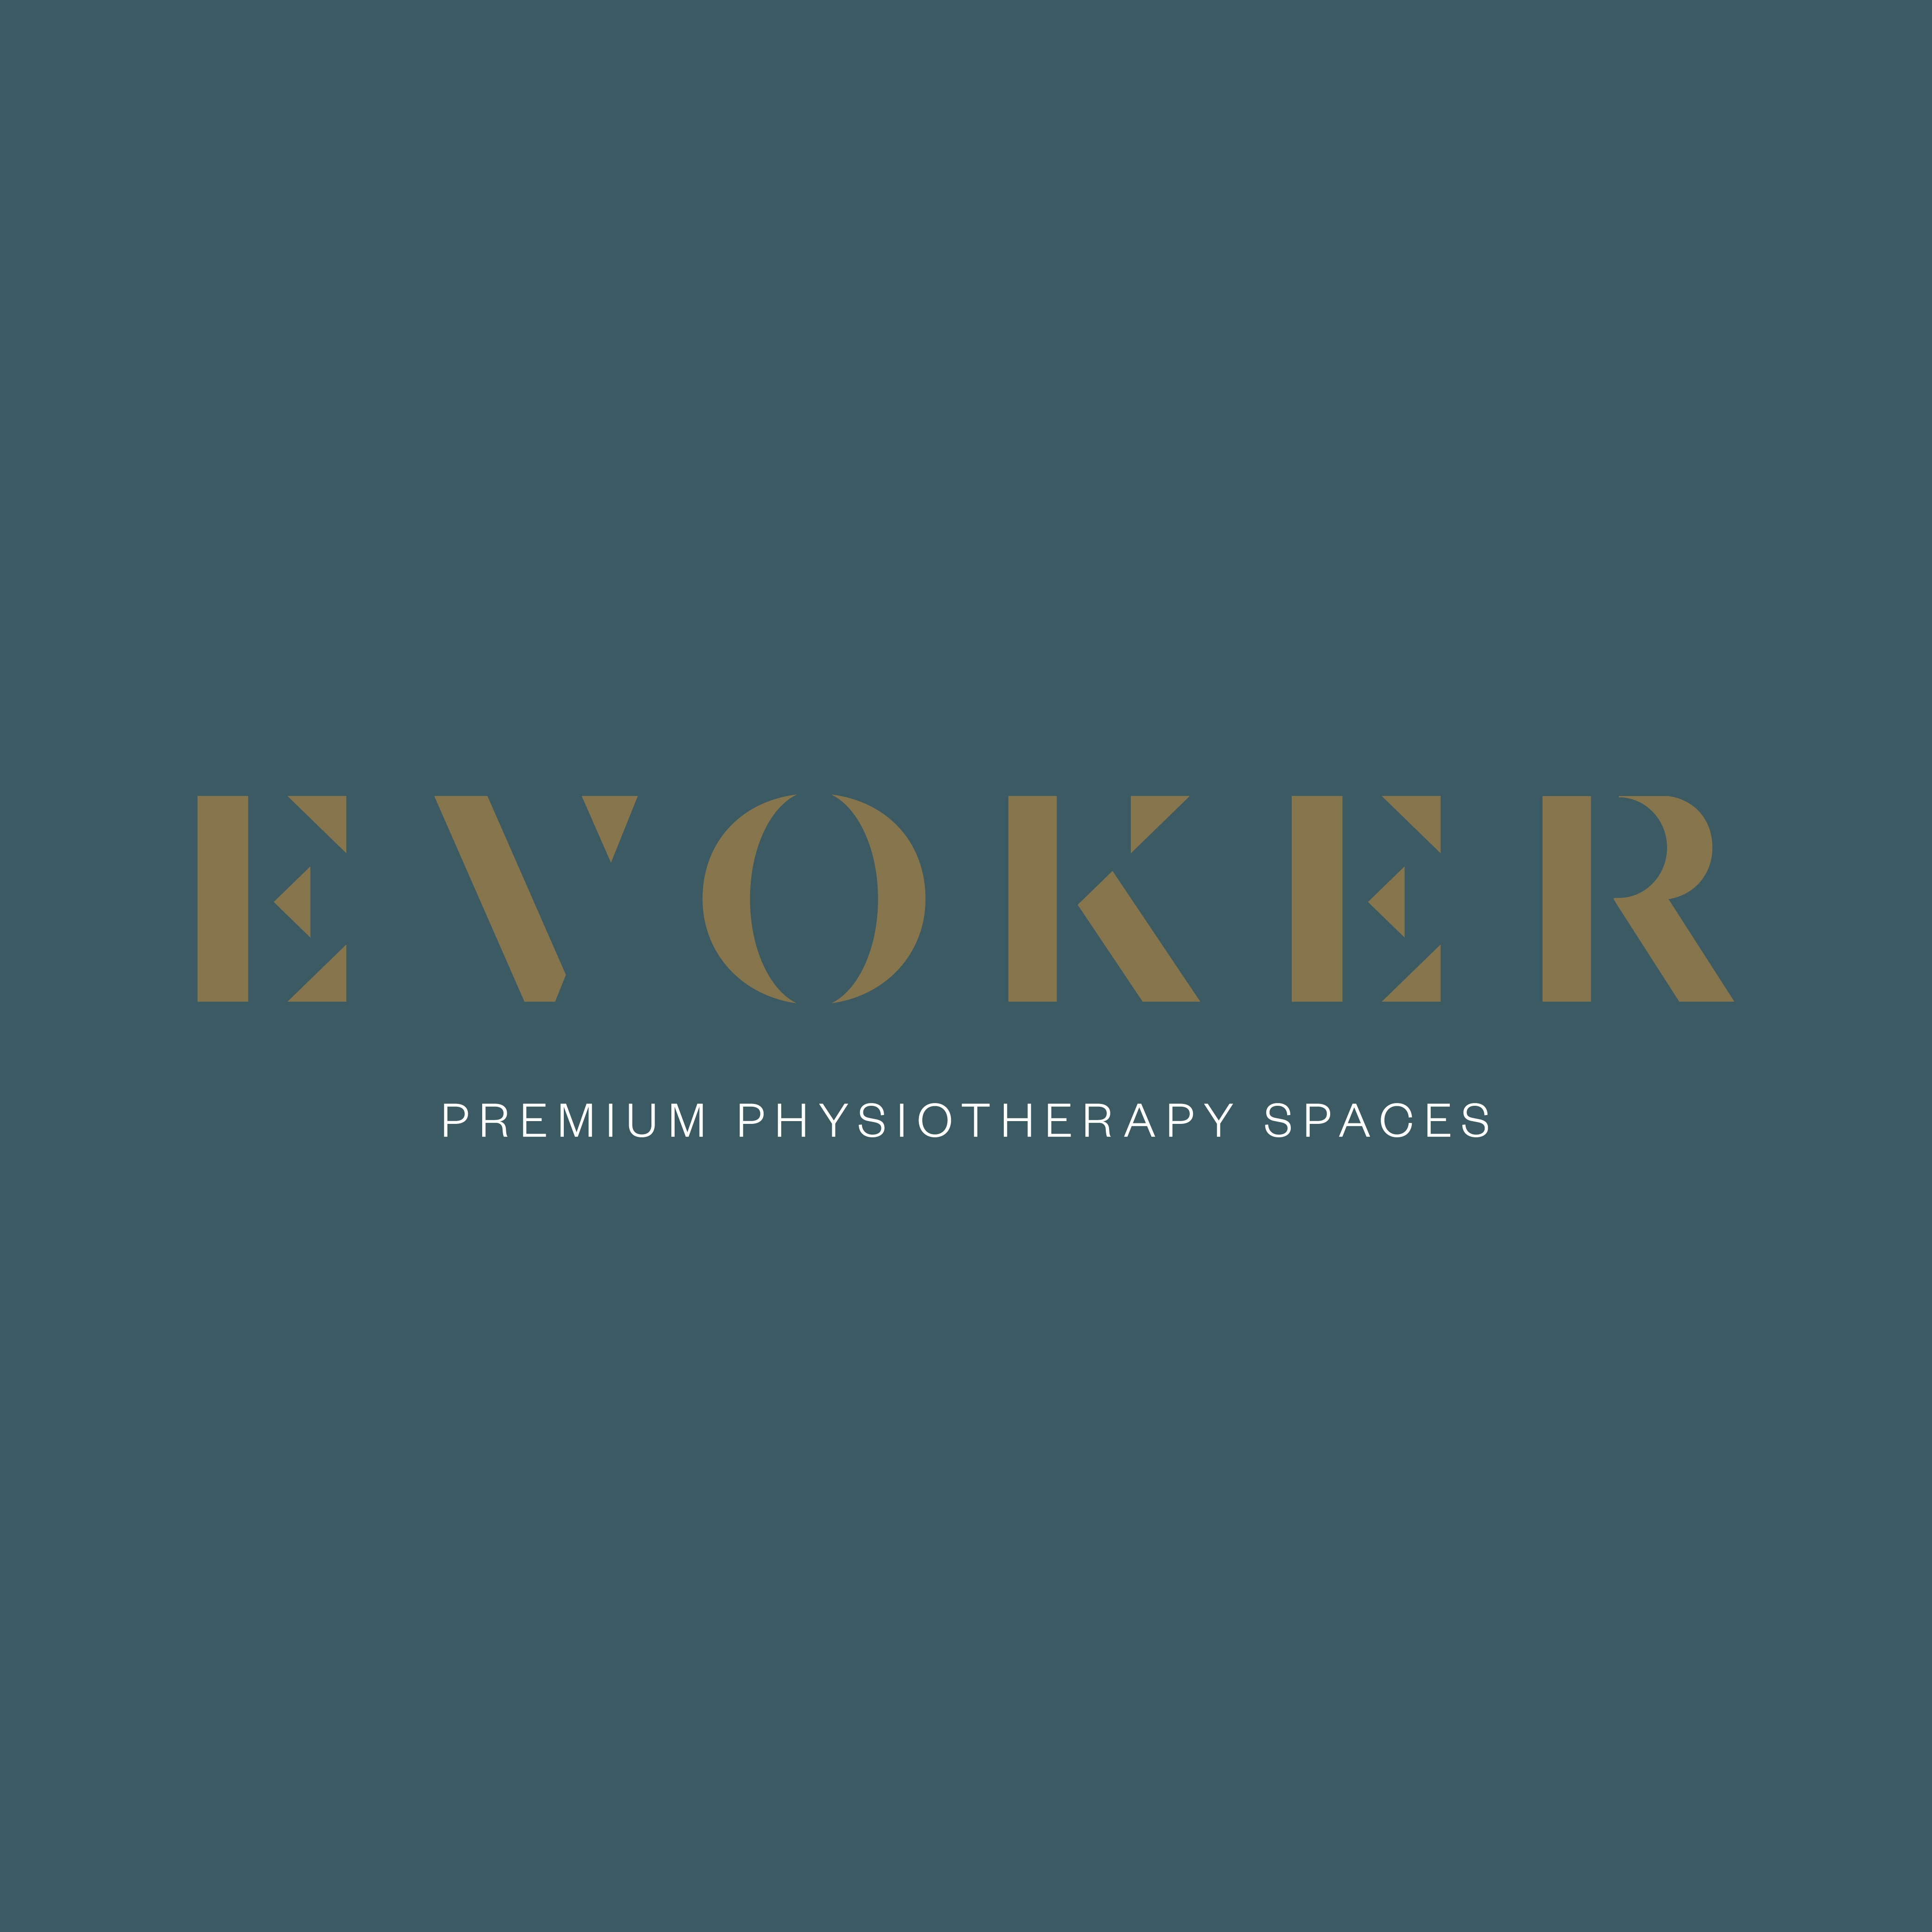 Evoker Premium Physiotherapy Spaces